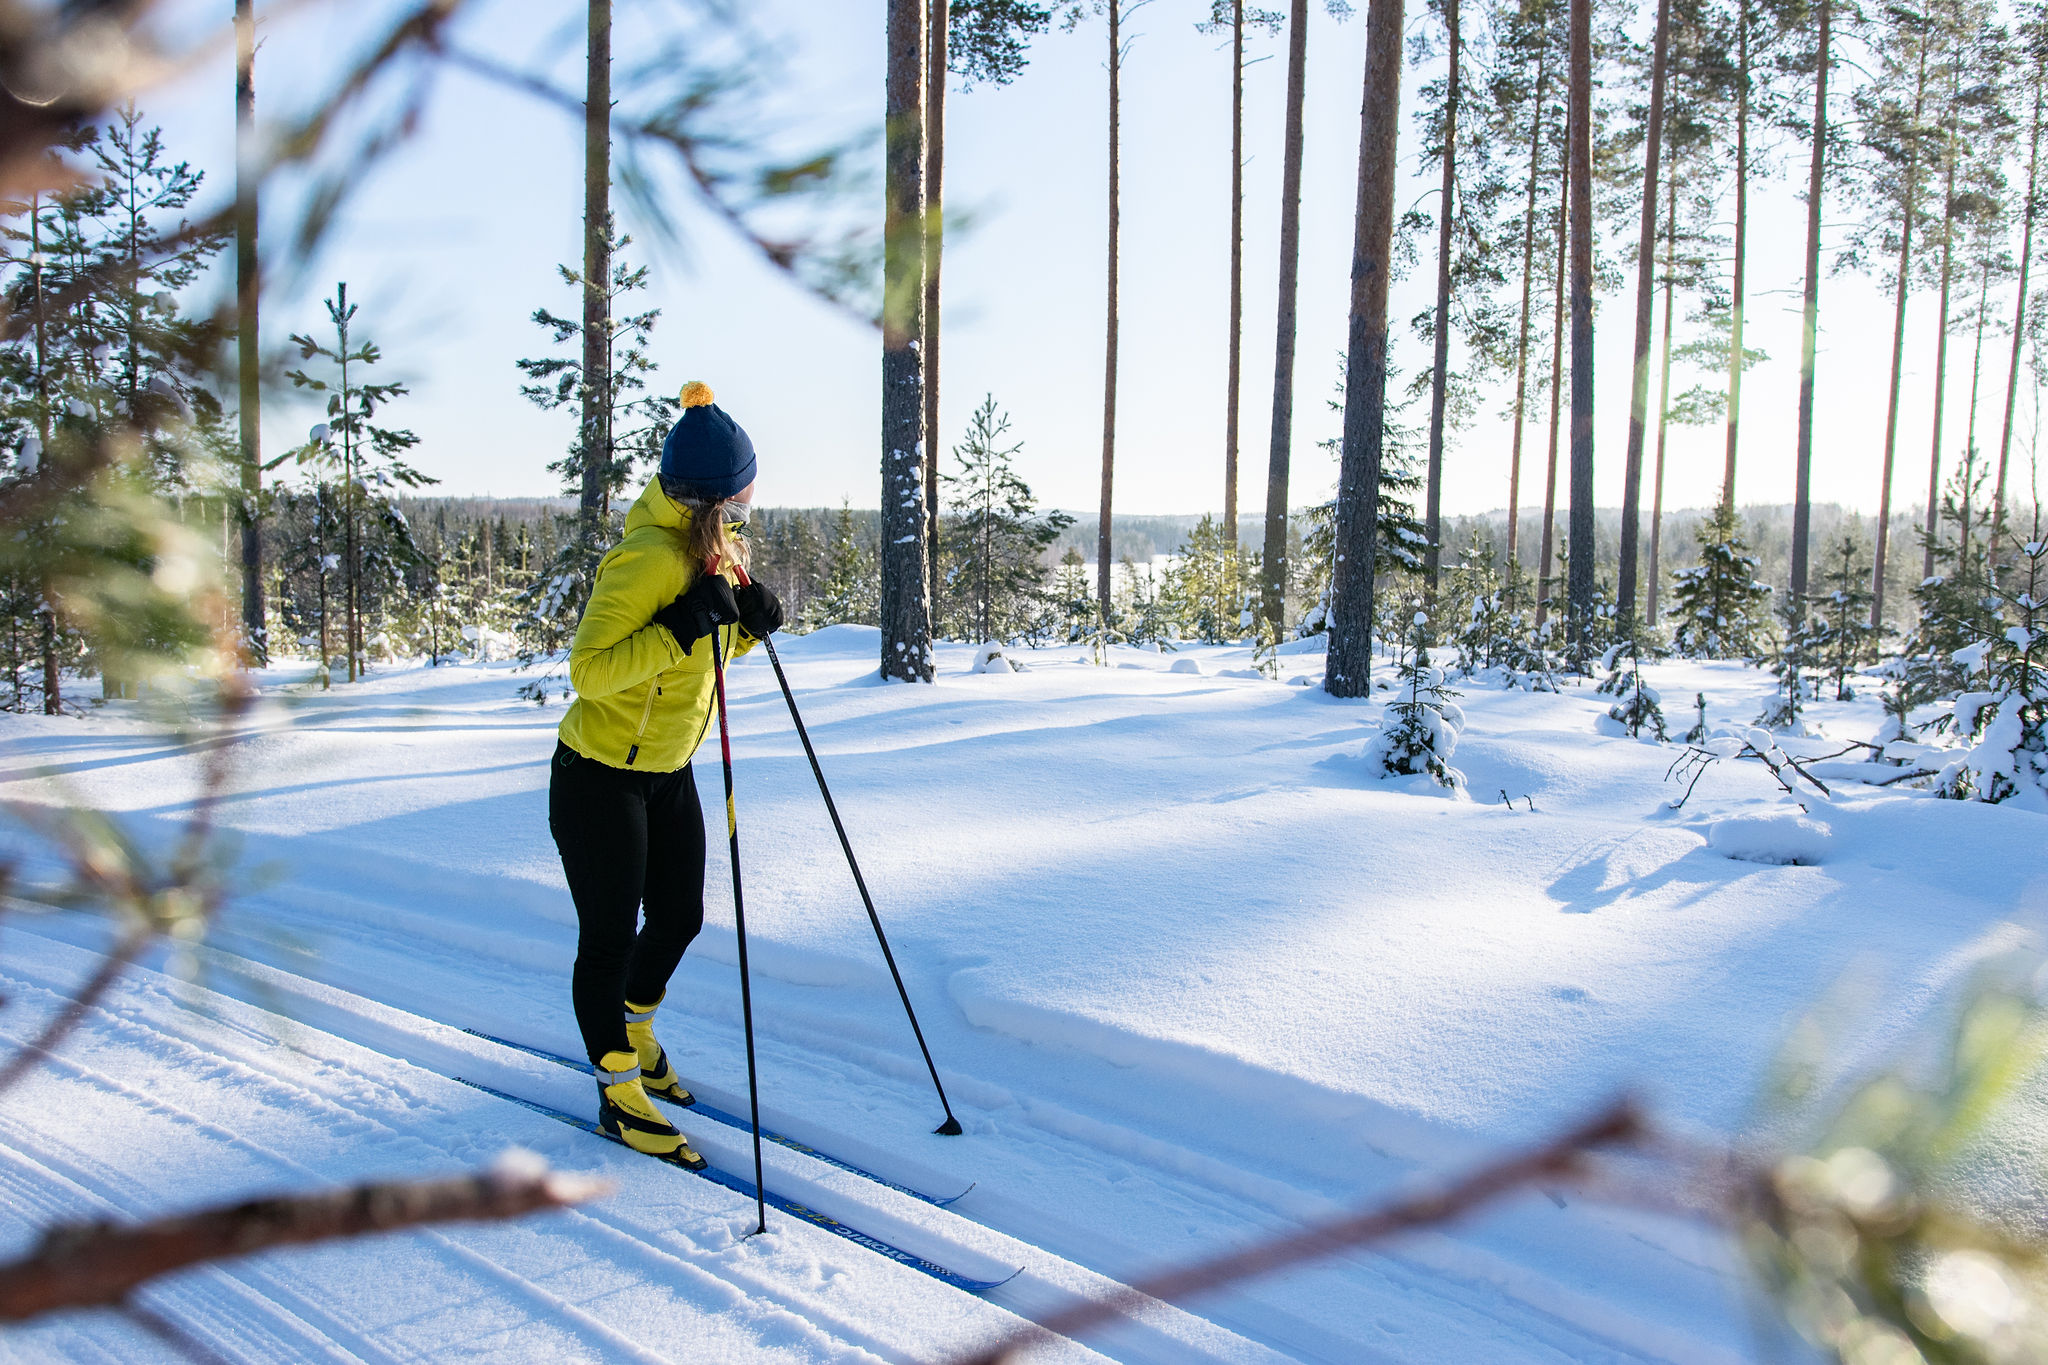 SaimaaLife Mari doing cross country skiing at Lomalehto cottages winter forests